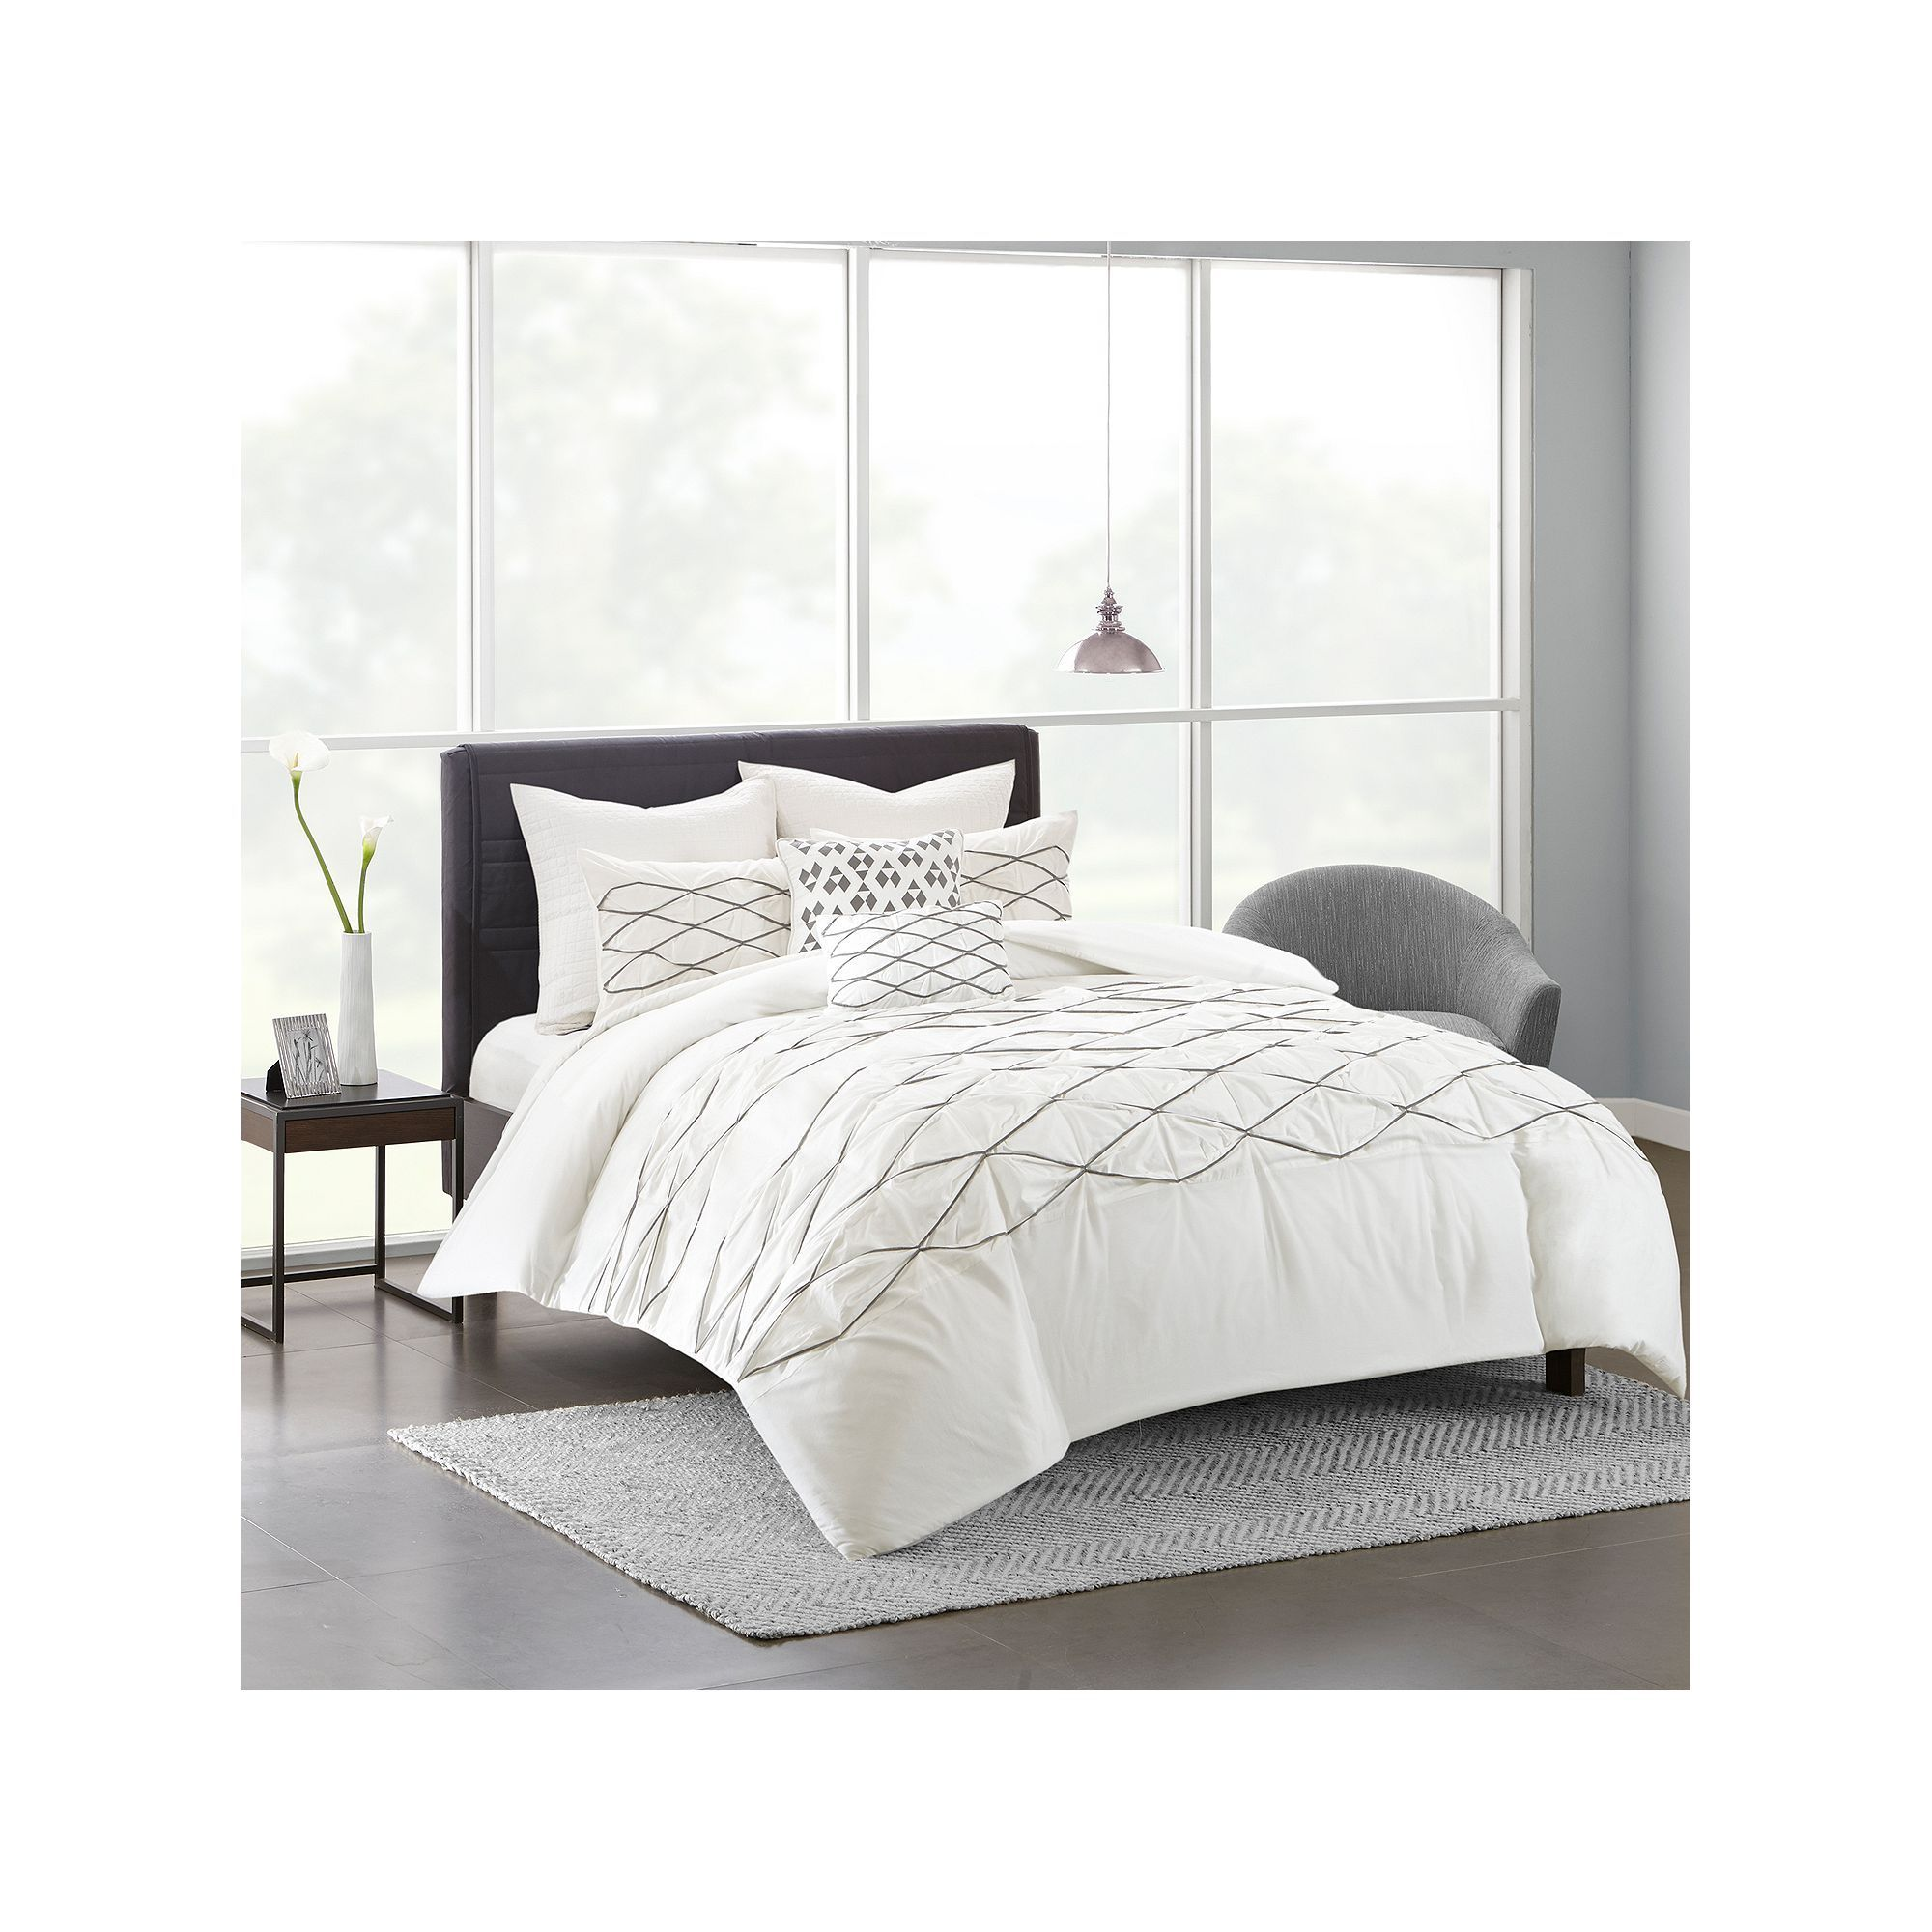 surya king piece by cover cfm duvet evelyn white master product hayneedle set